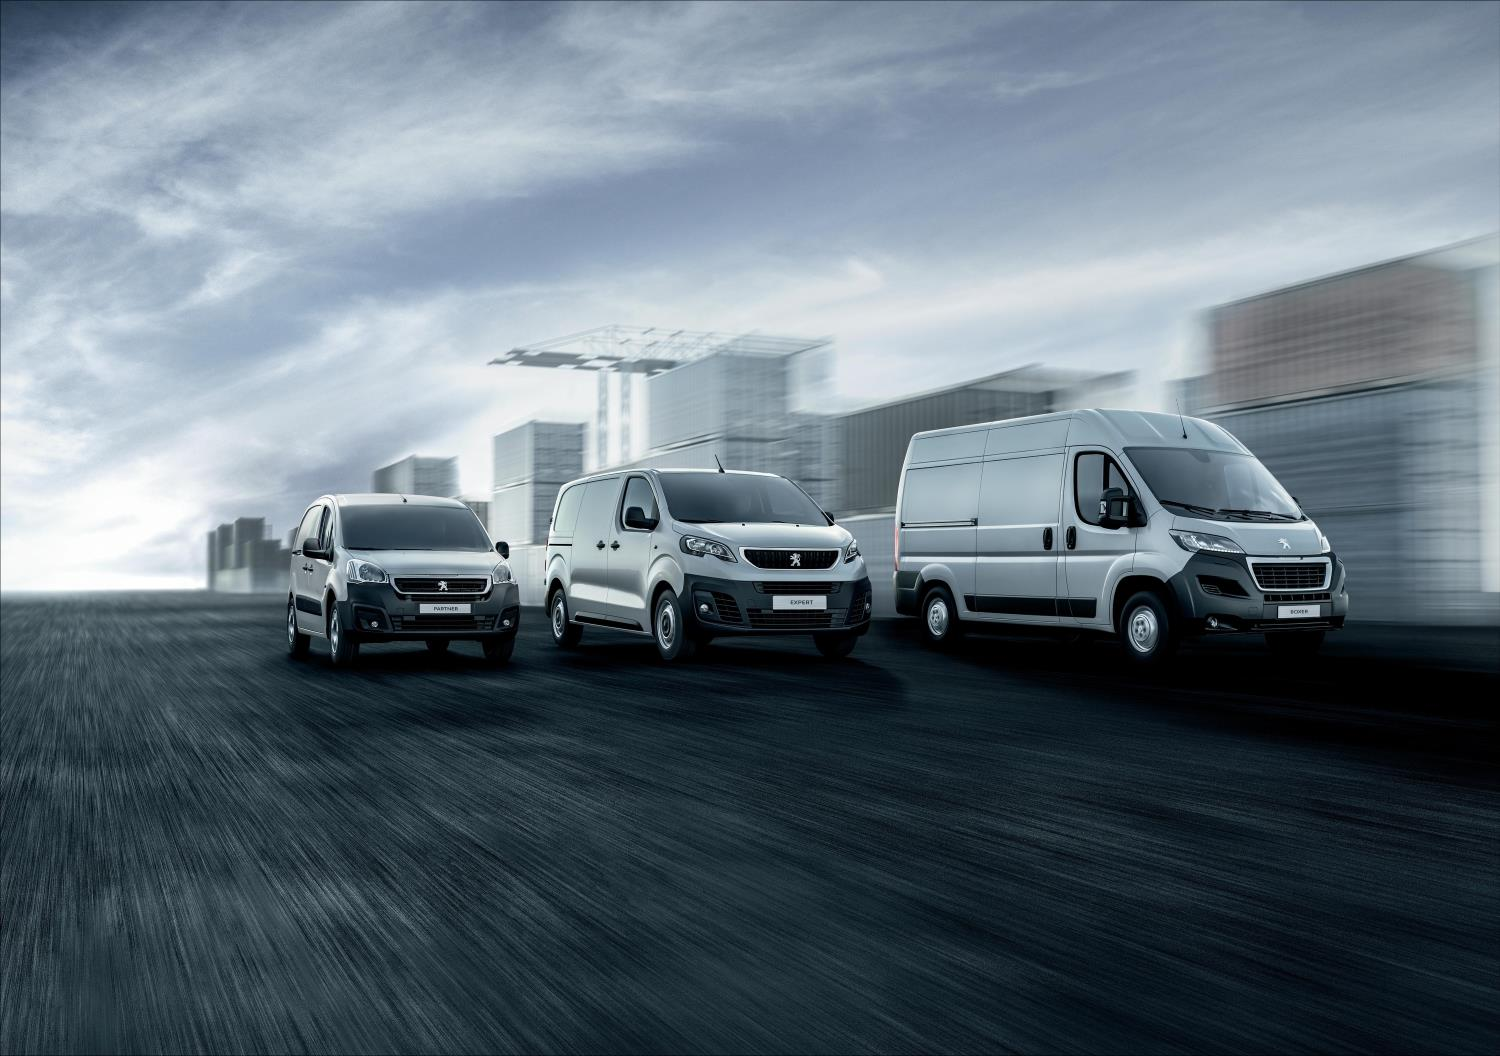 Peugeot light commercial vehicle (LCV) range